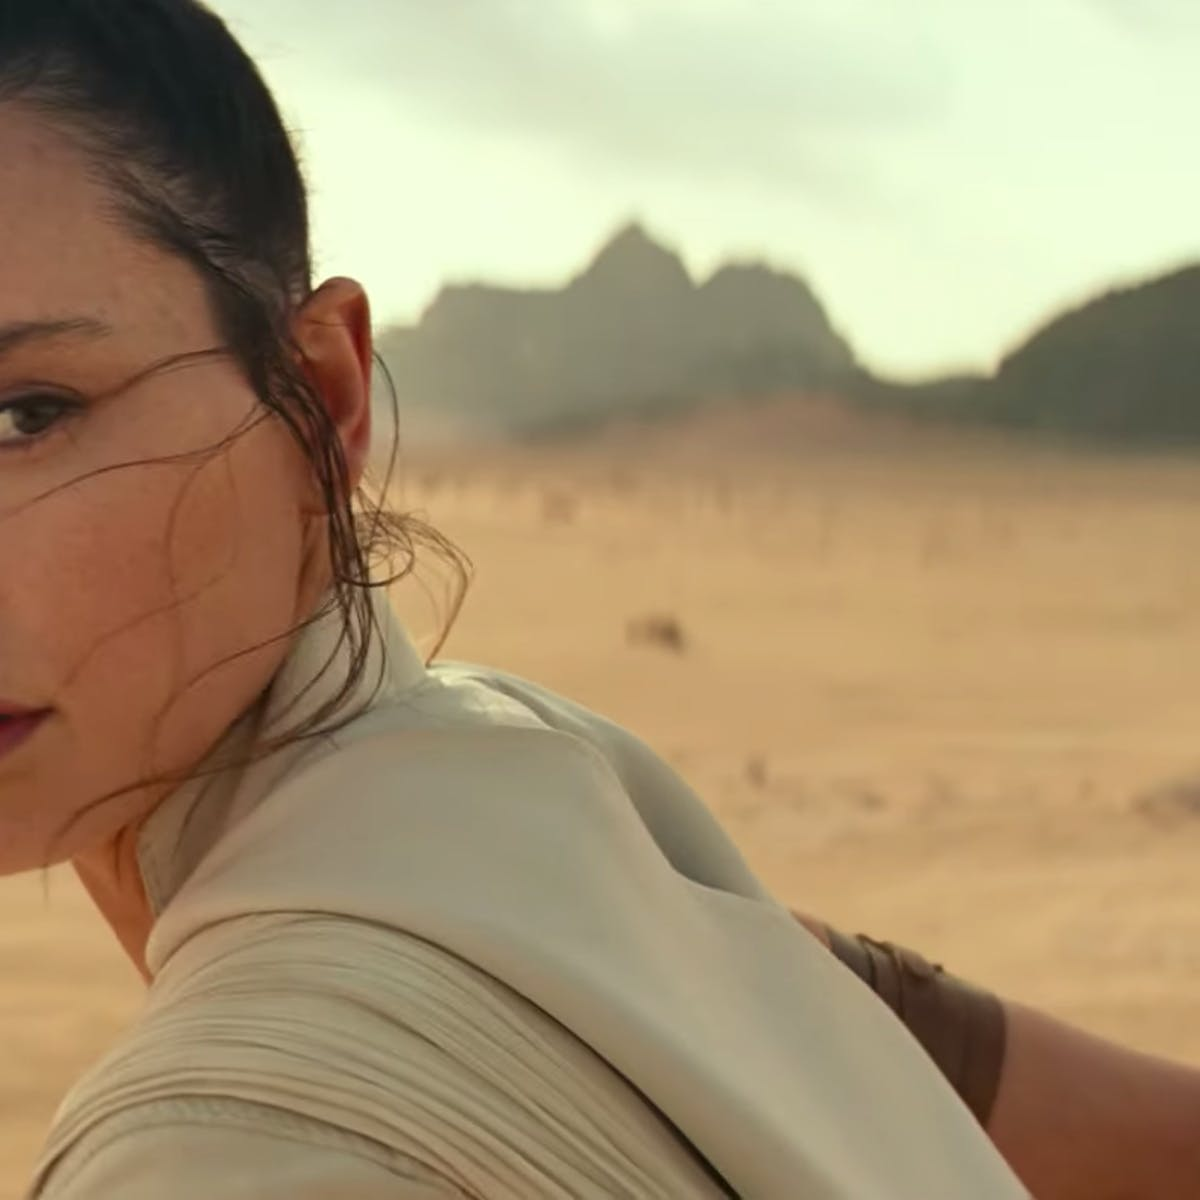 'Rise of Skywalker' spoilers: Dark Rey's origins teased in prequel comics